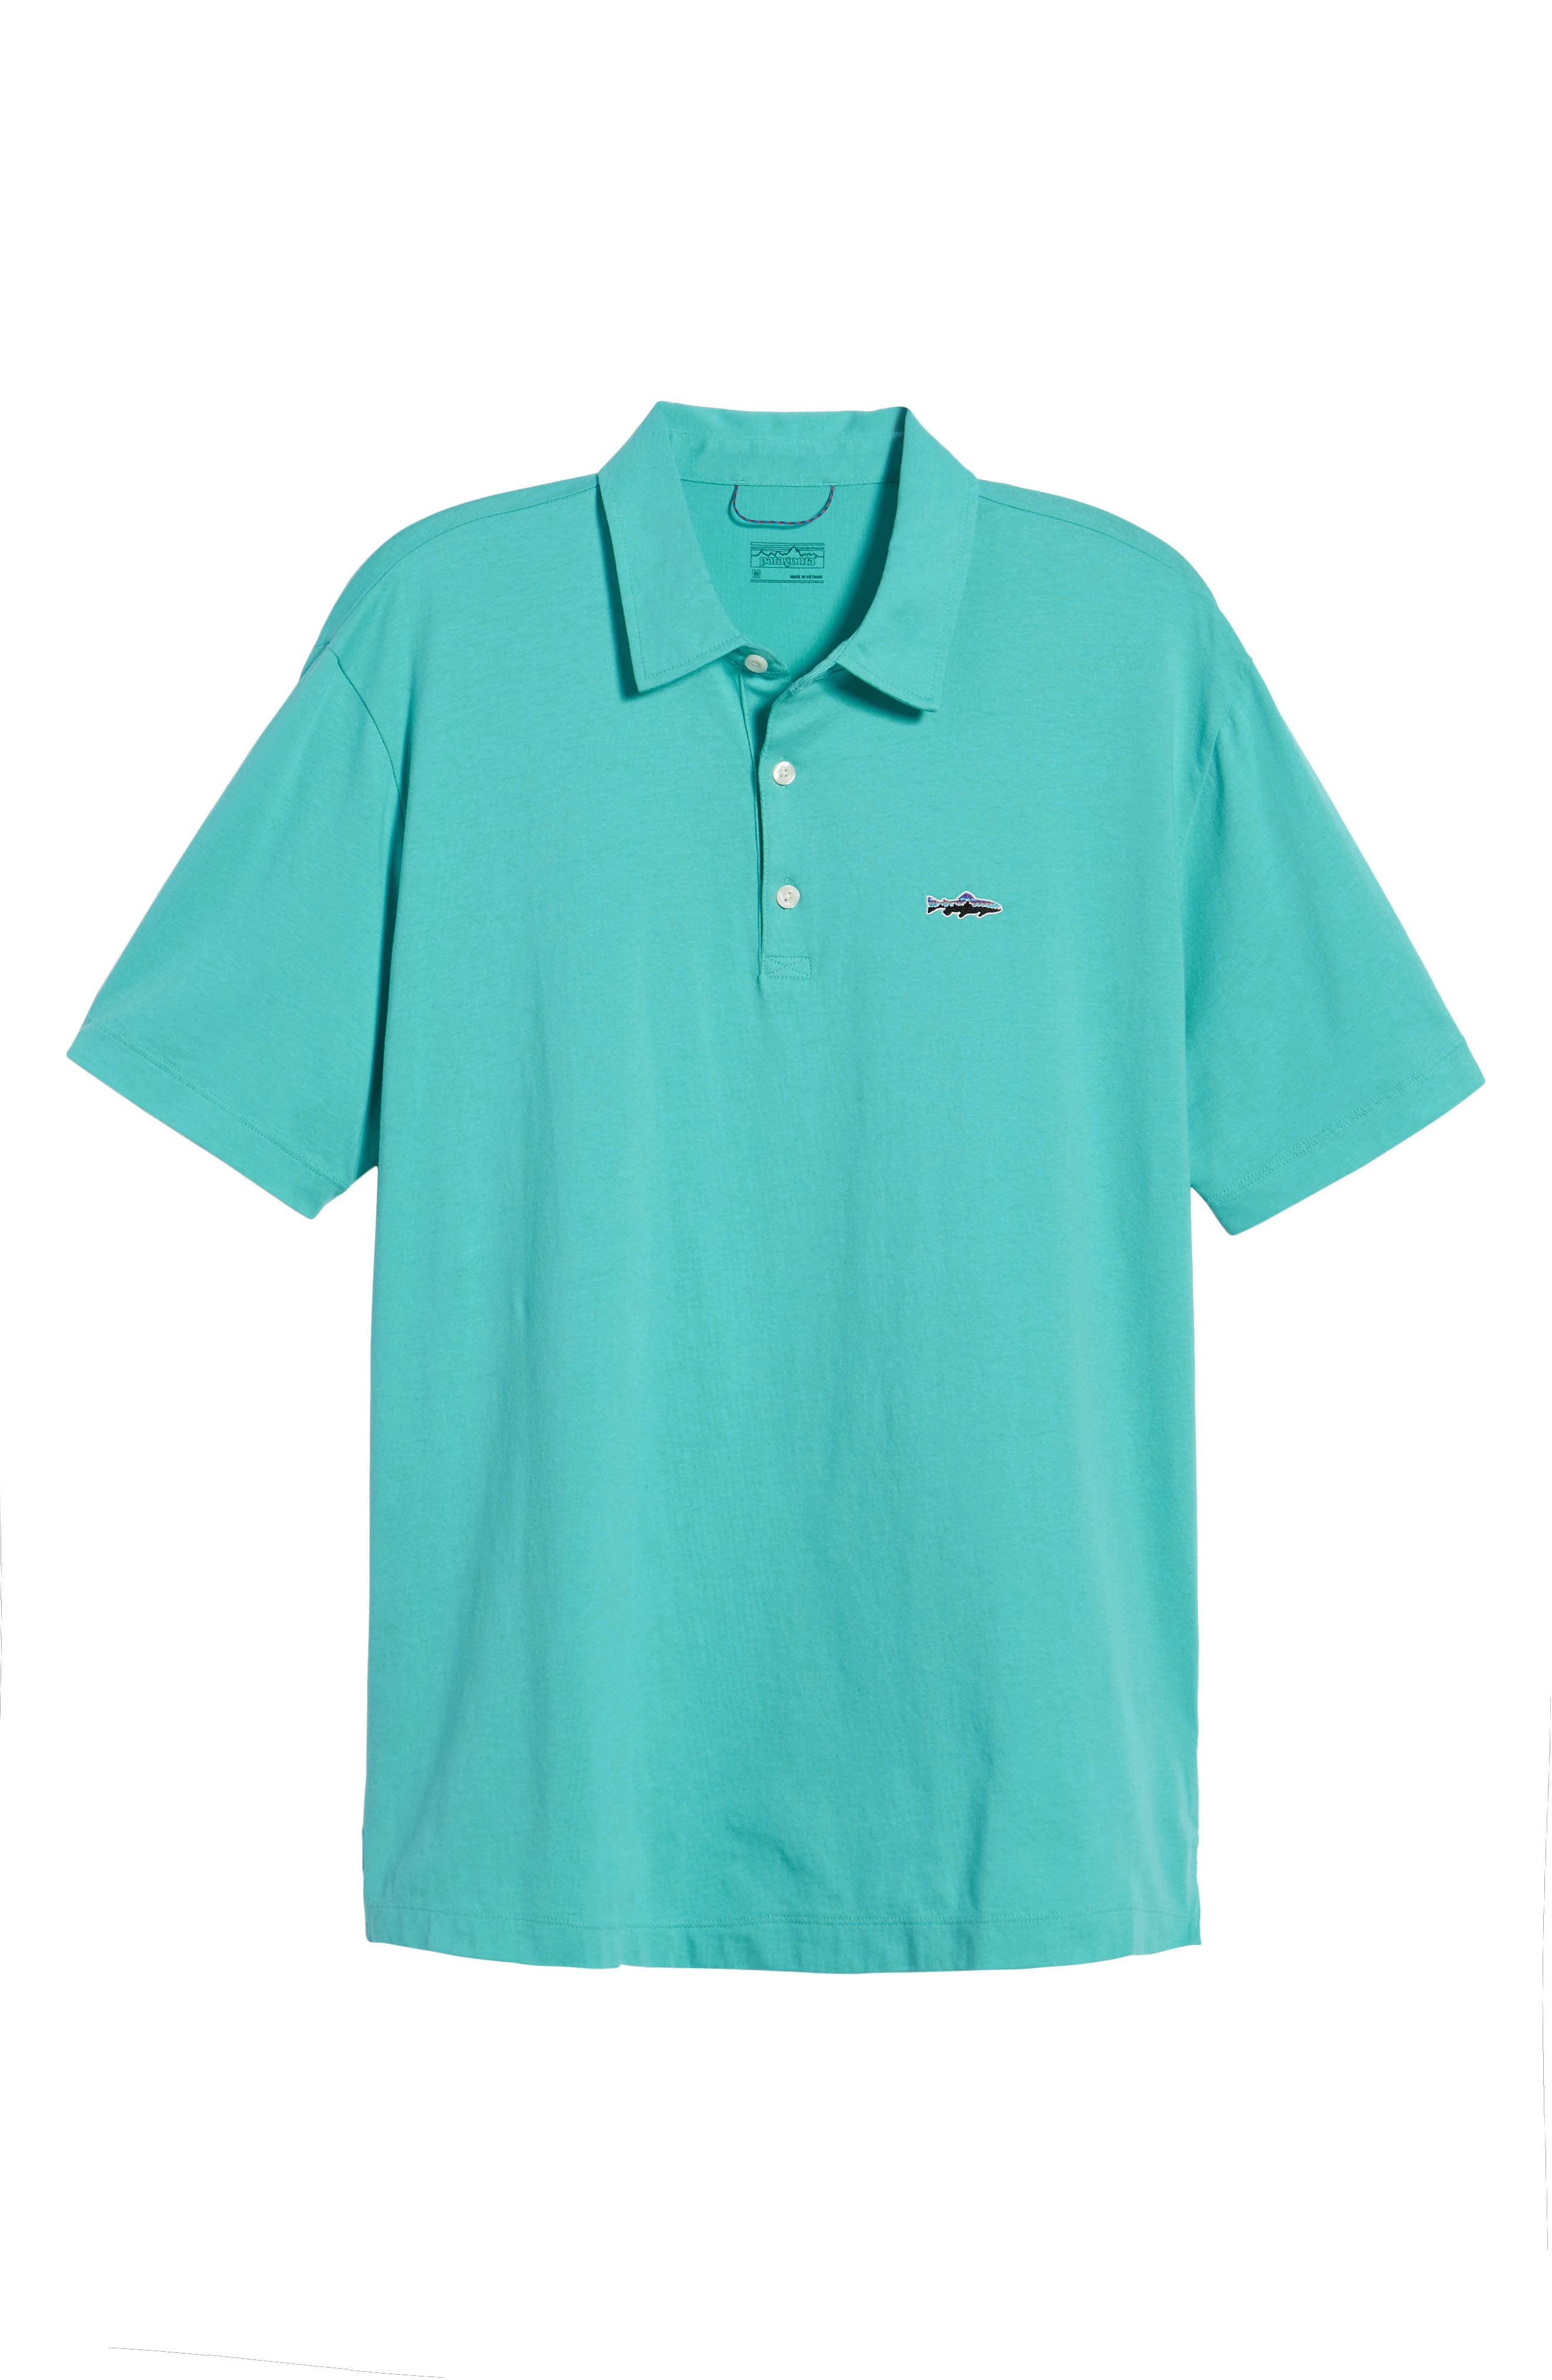 'Trout Fitz Roy' Organic Cotton Polo,                             Alternate thumbnail 6, color,                             STRAIGHT BLUE